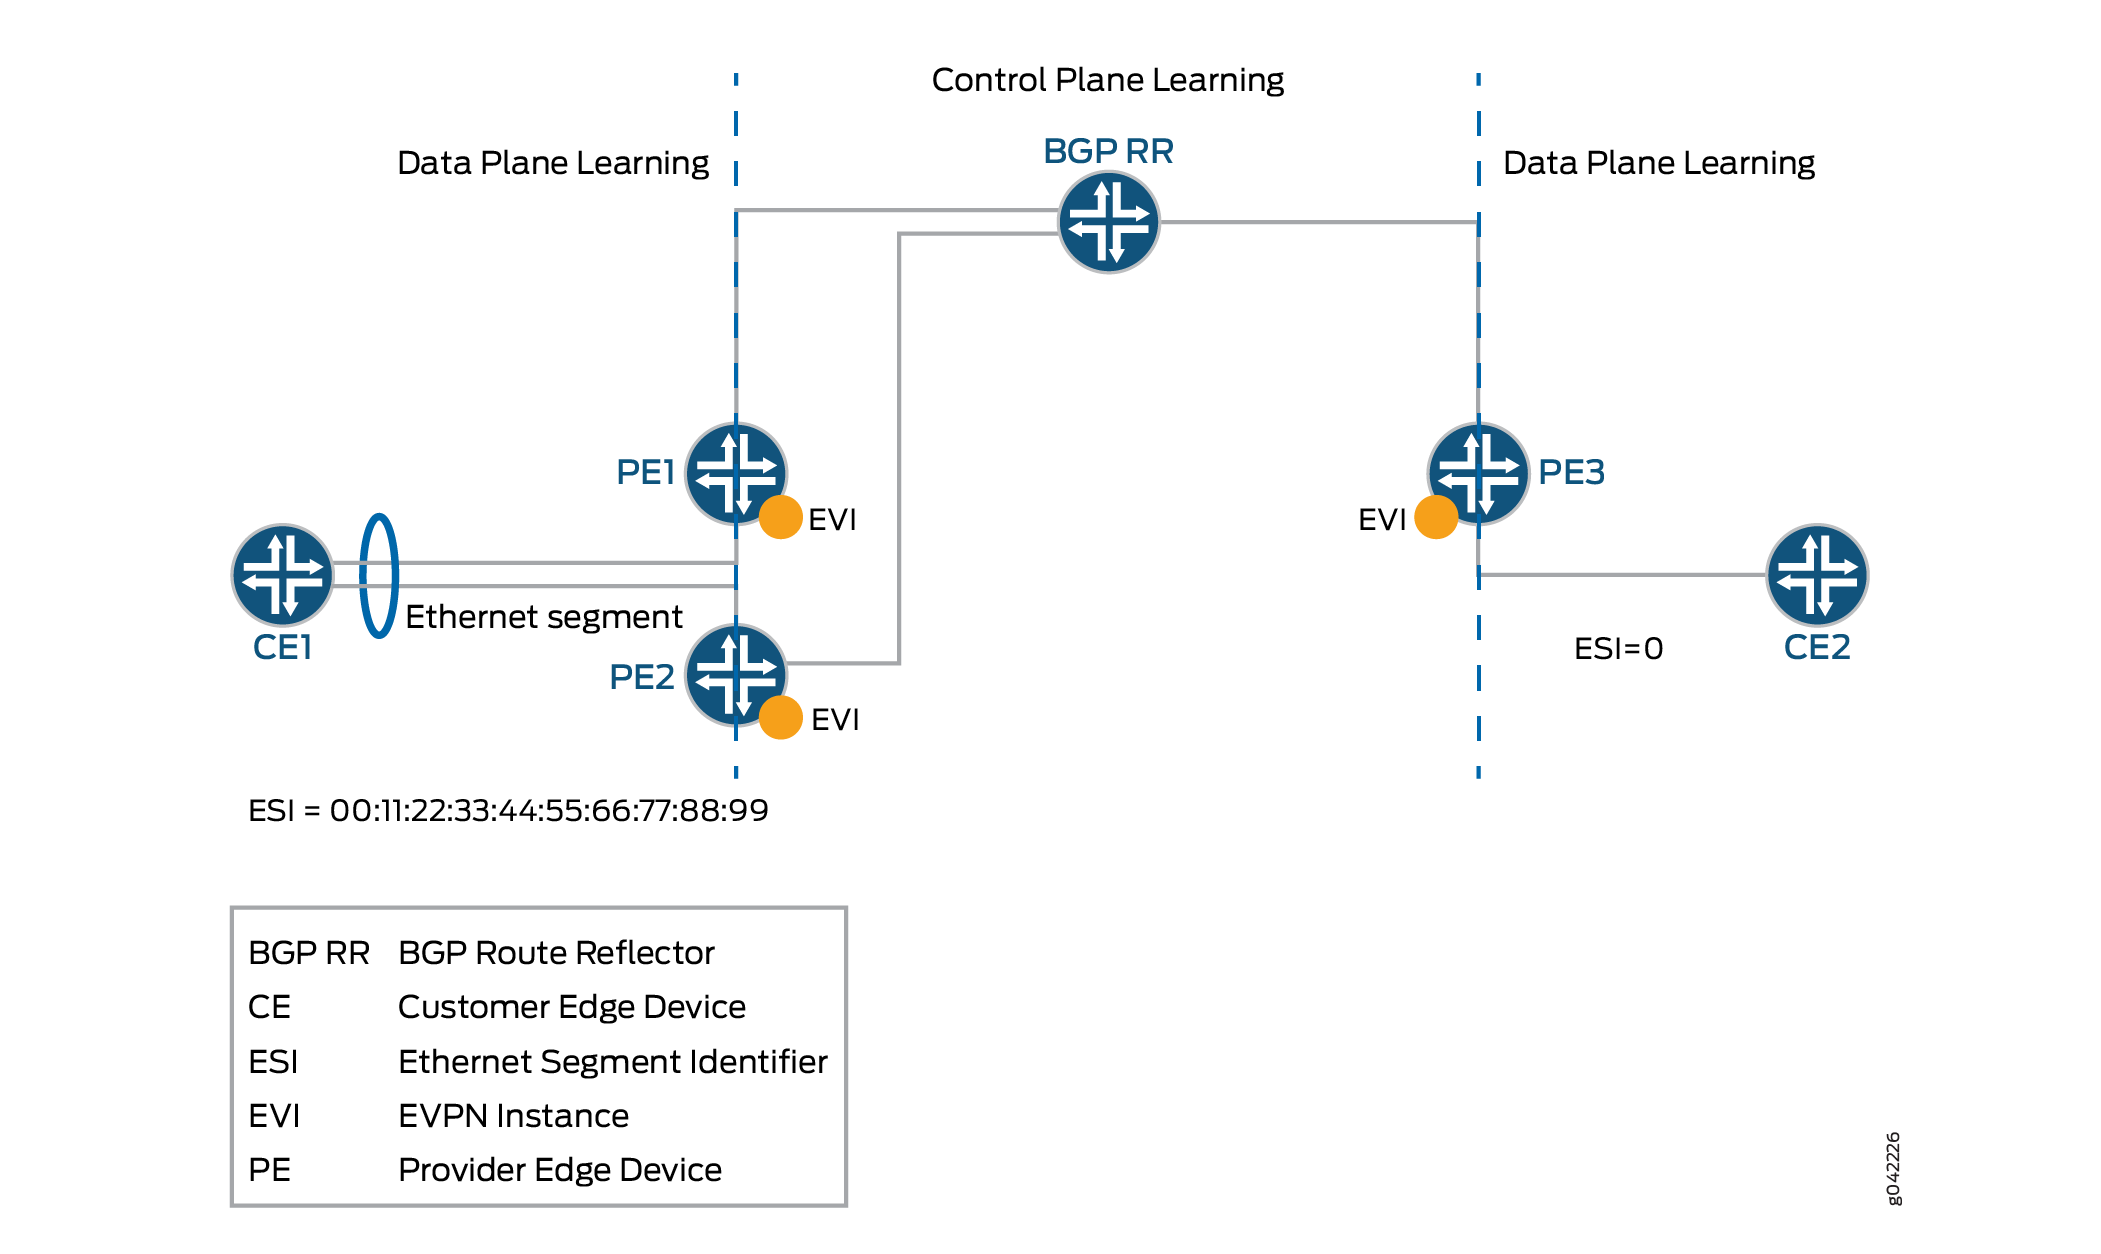 Understanding EVPN with VXLAN Data Plane Encapsulation - TechLibrary